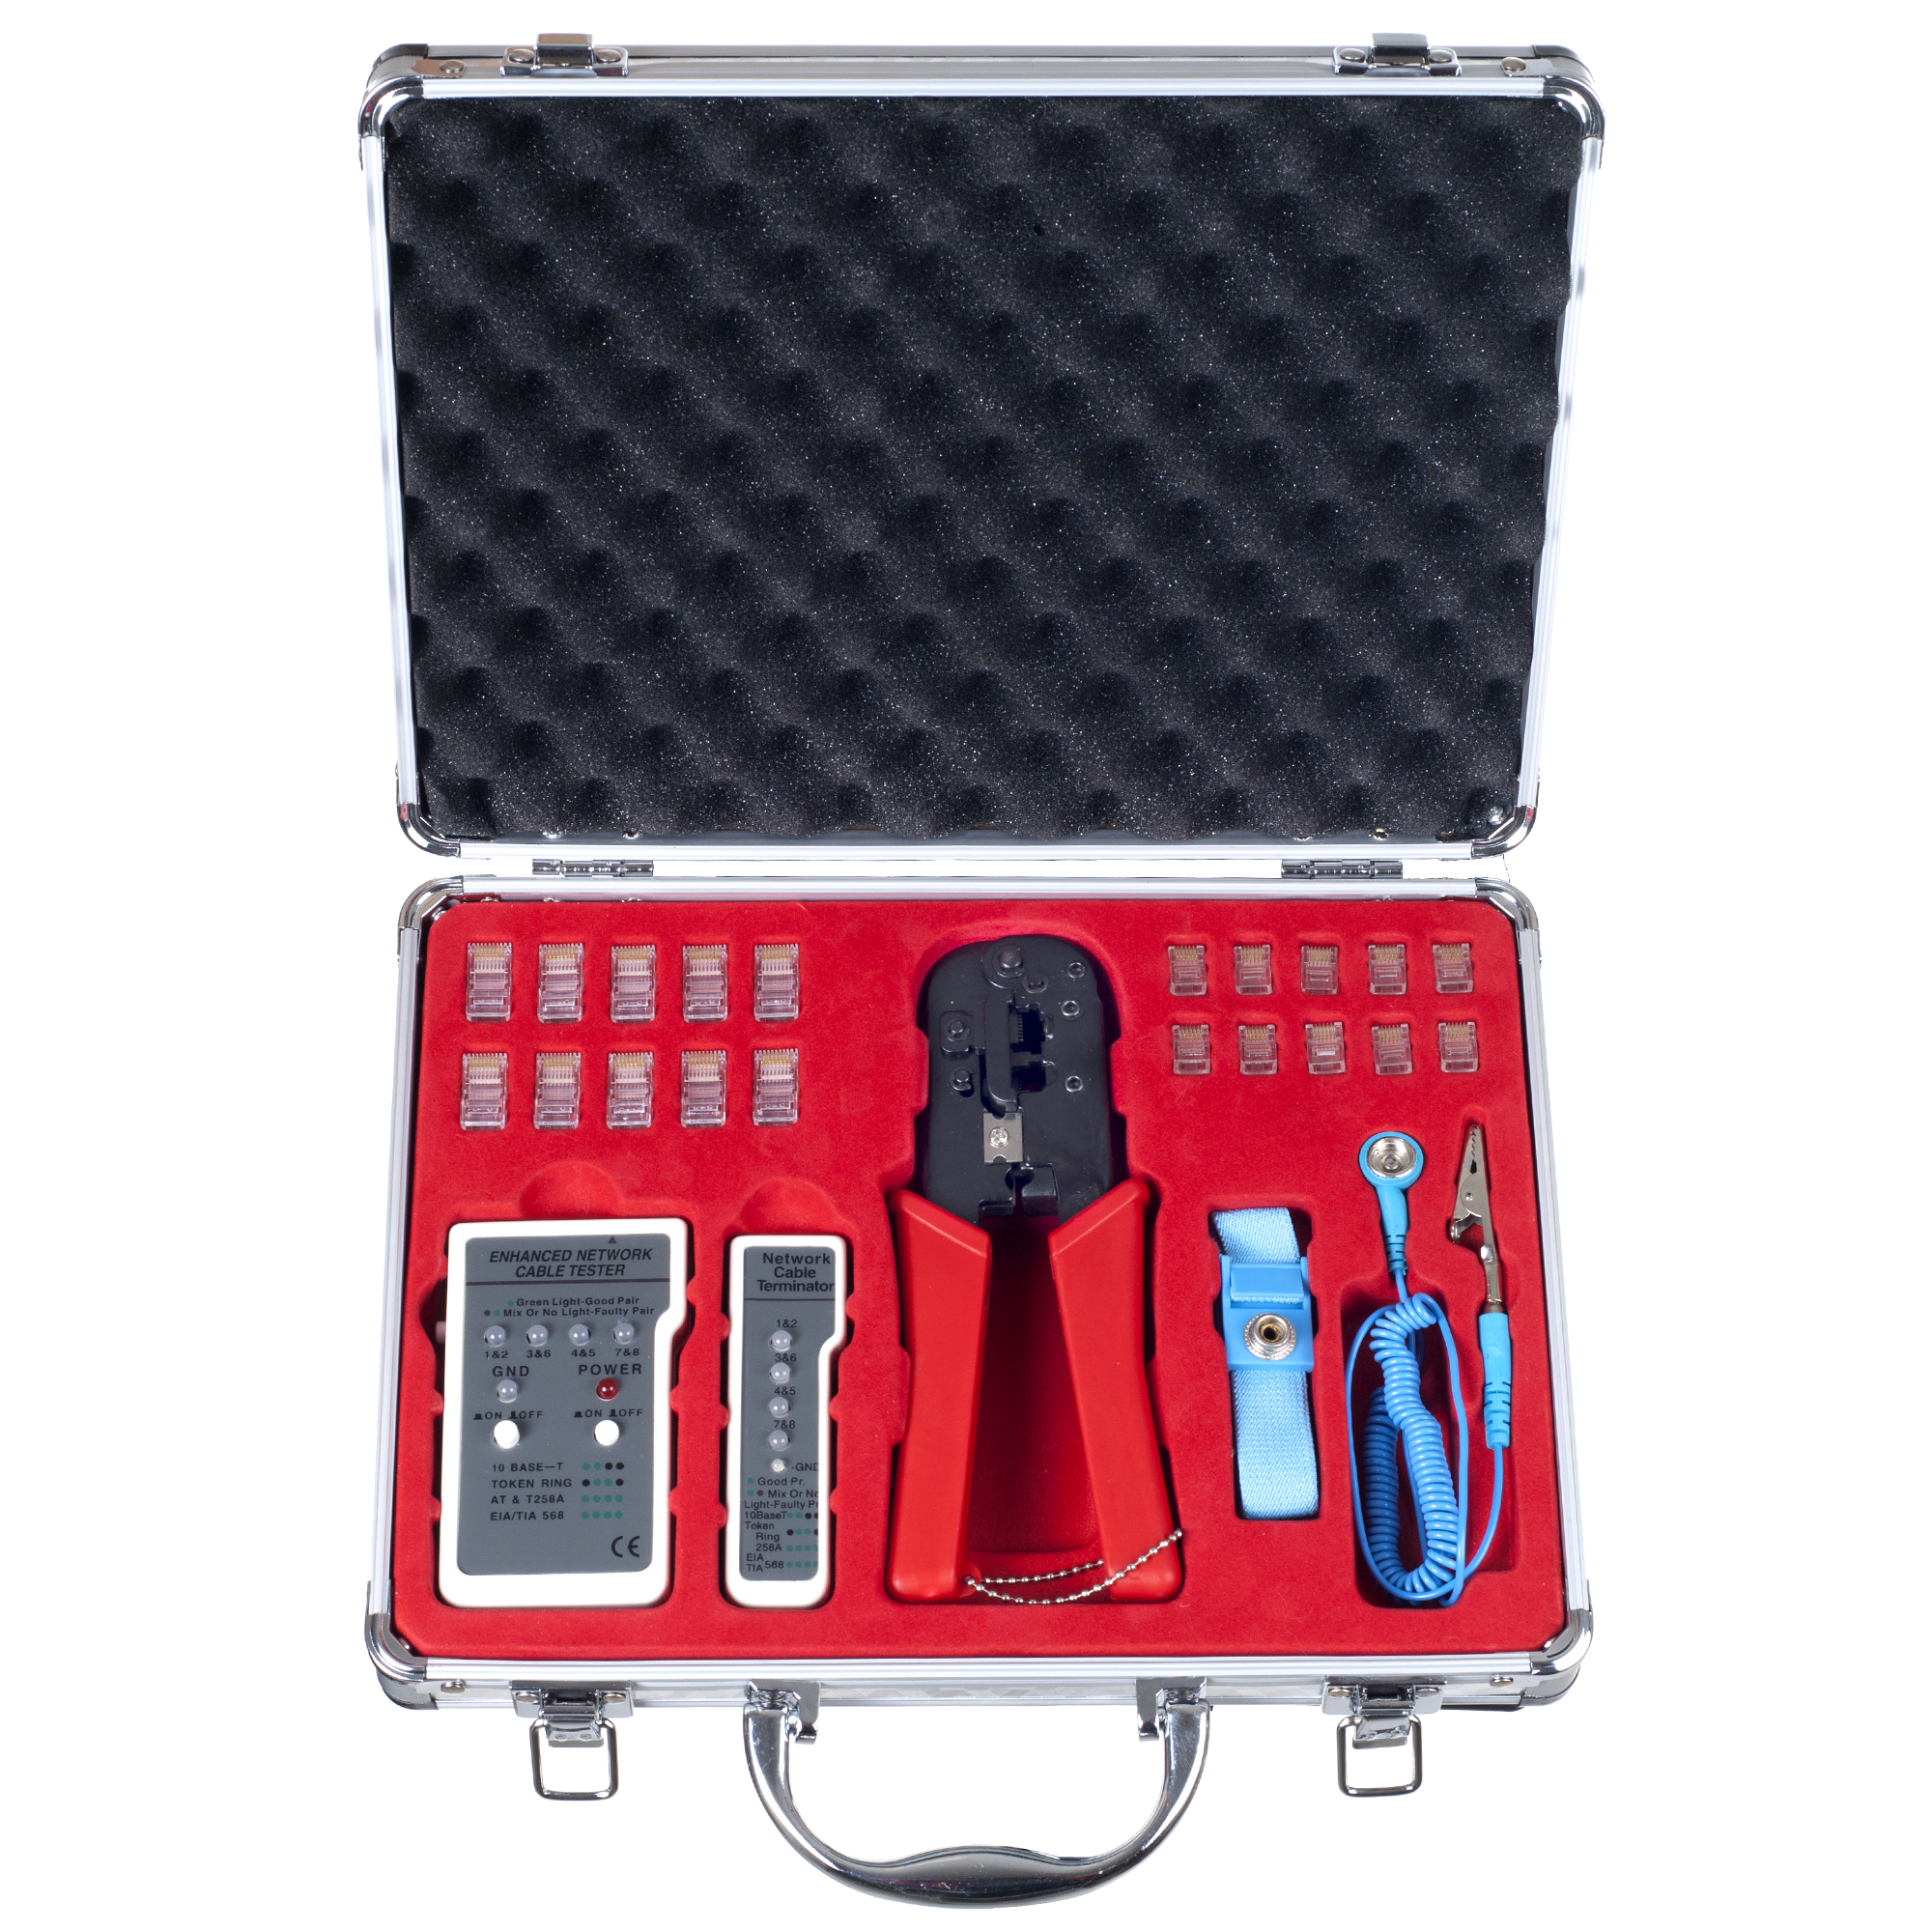 Computer, PC and Network Cable Installation and Testing Kit - 24 pc. by Stalwart